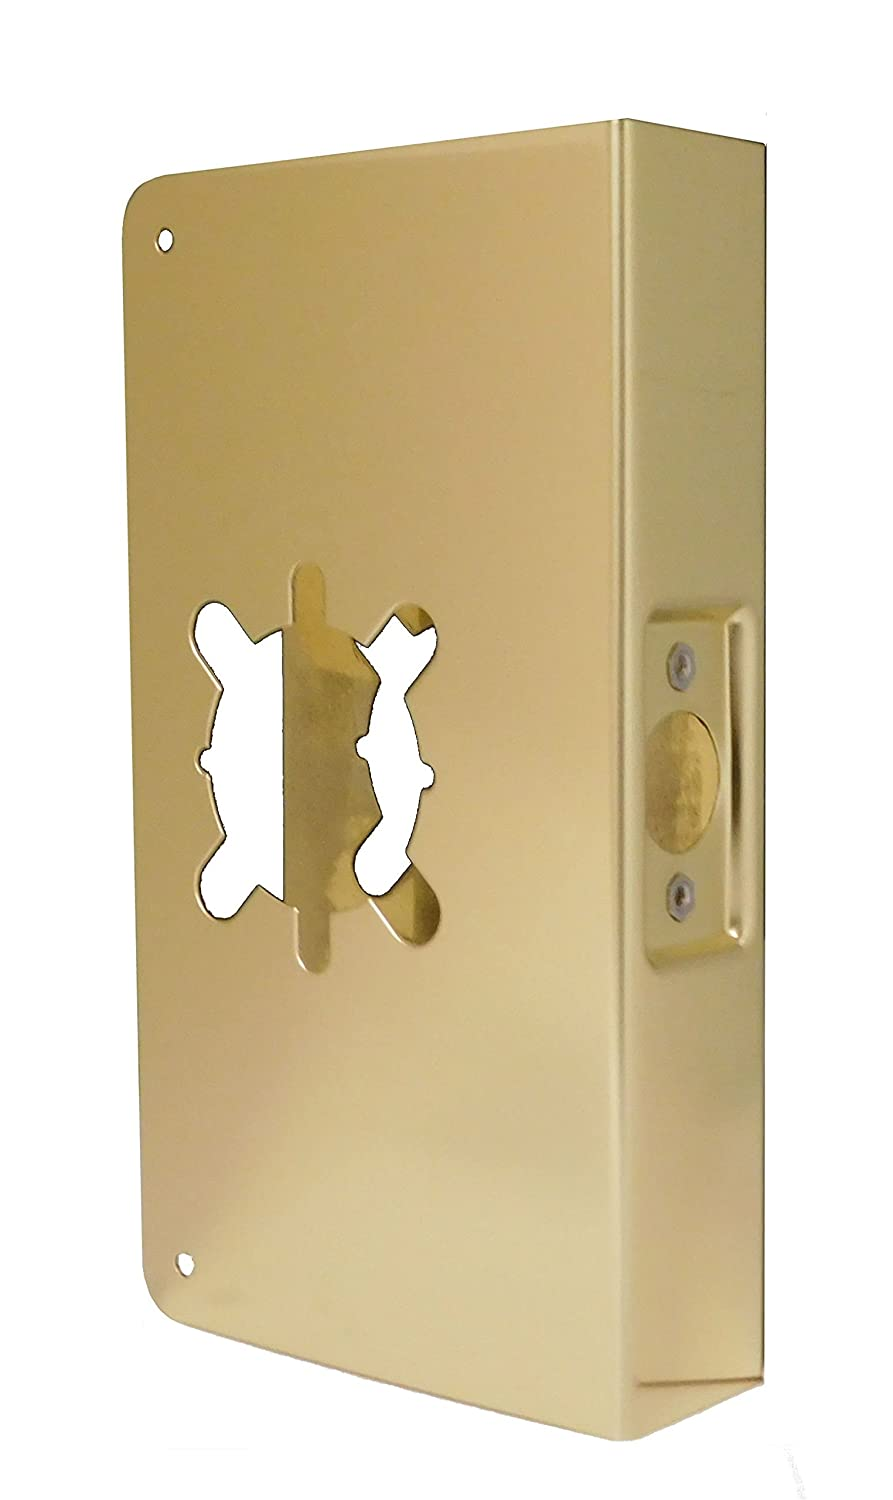 Don-Jo 20-2-CW 22 Gauge Stainless Steel Wrap-Around Plate, Polished Brass Finish, 5-3/4